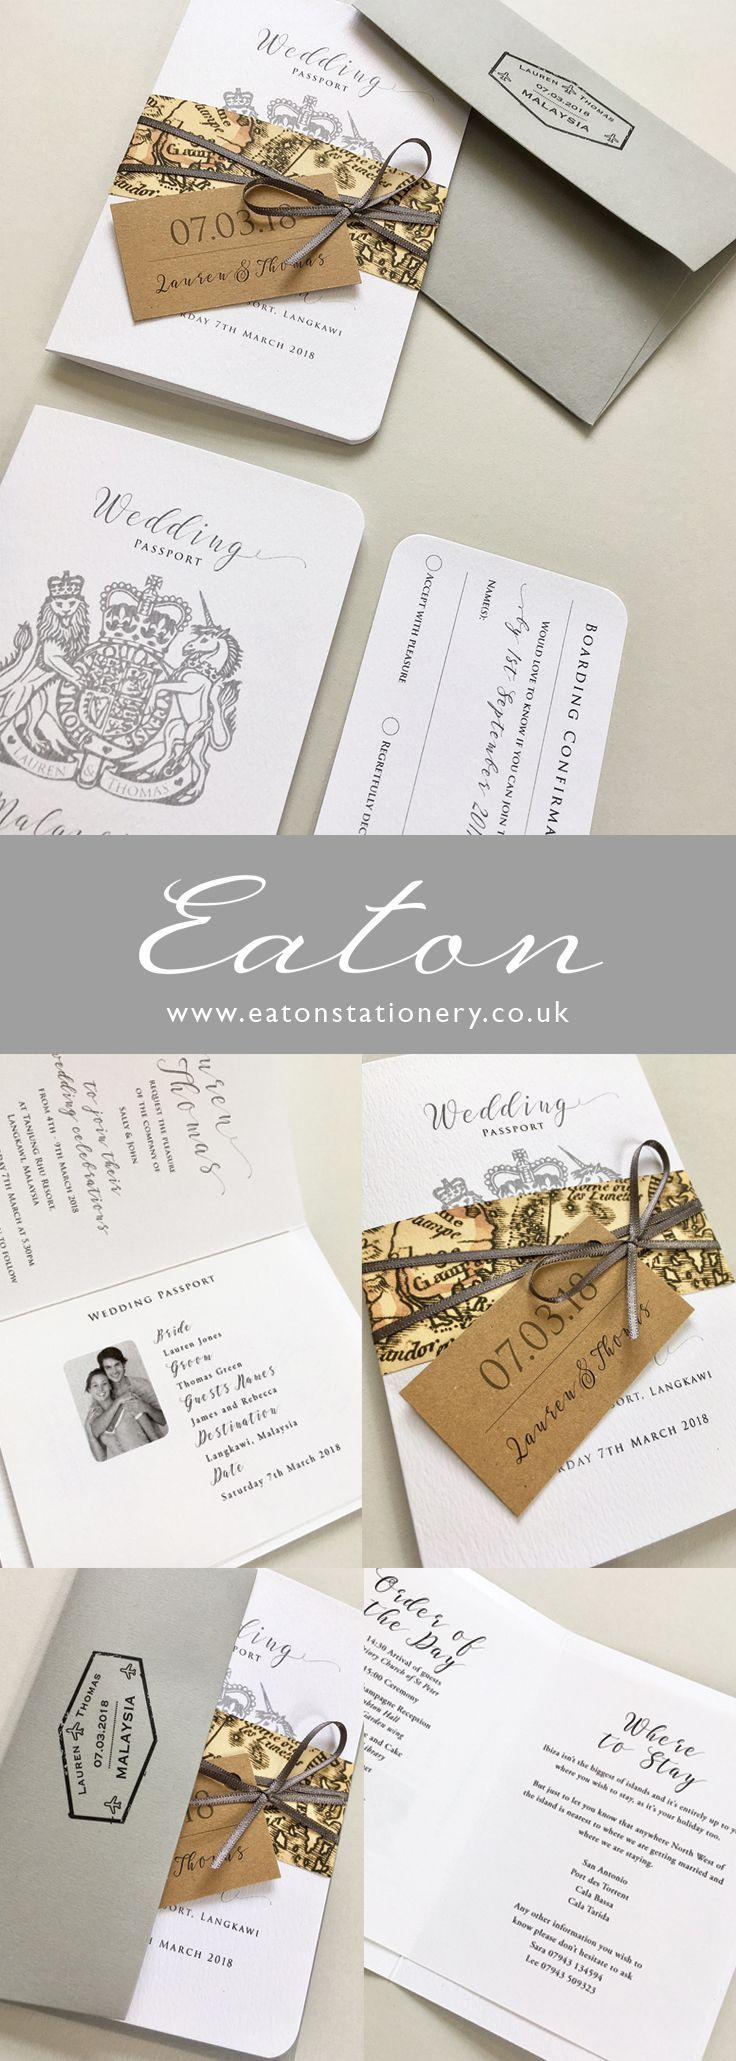 how to put guest names on wedding invitations%0A All stationery is fully customisable with your wording and colour  selections  Invitation sets come fully assembled and printed with your guests  names